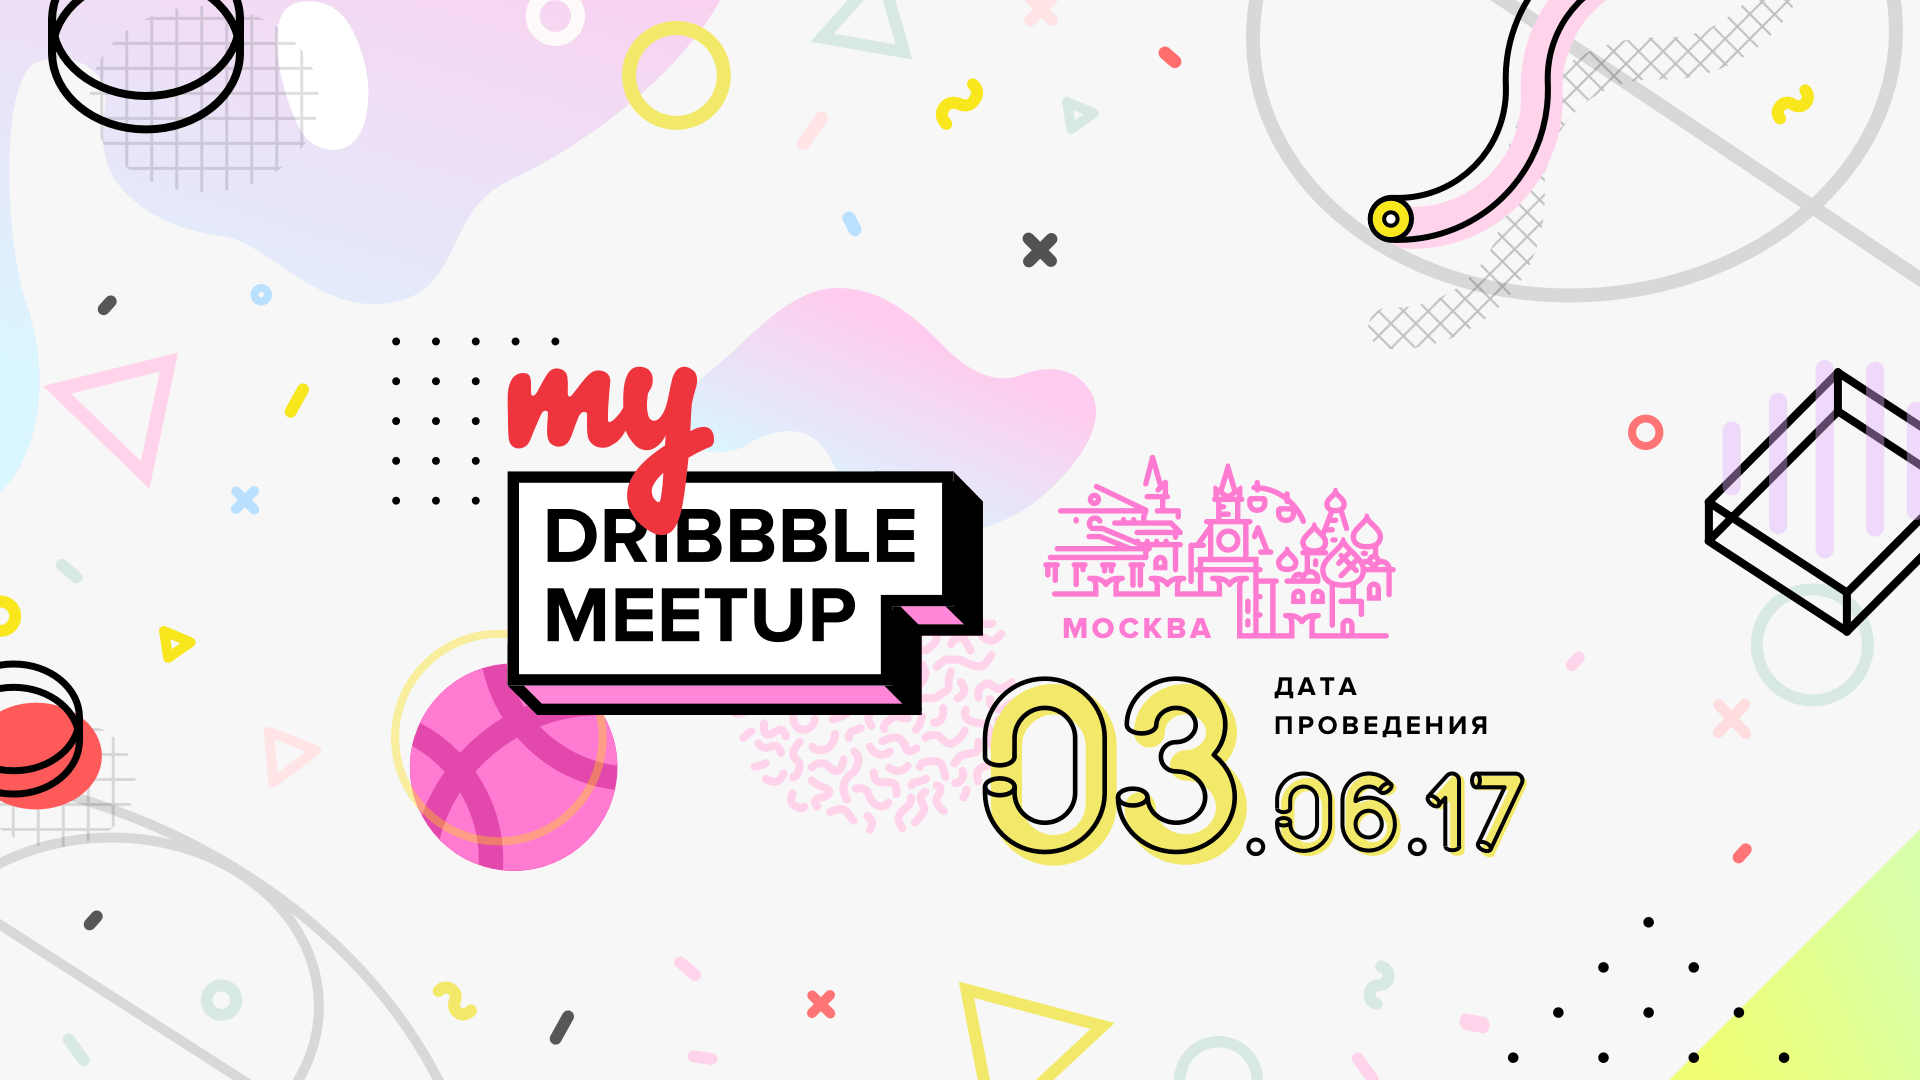 myDribbble Meetup 2017 in Moscow